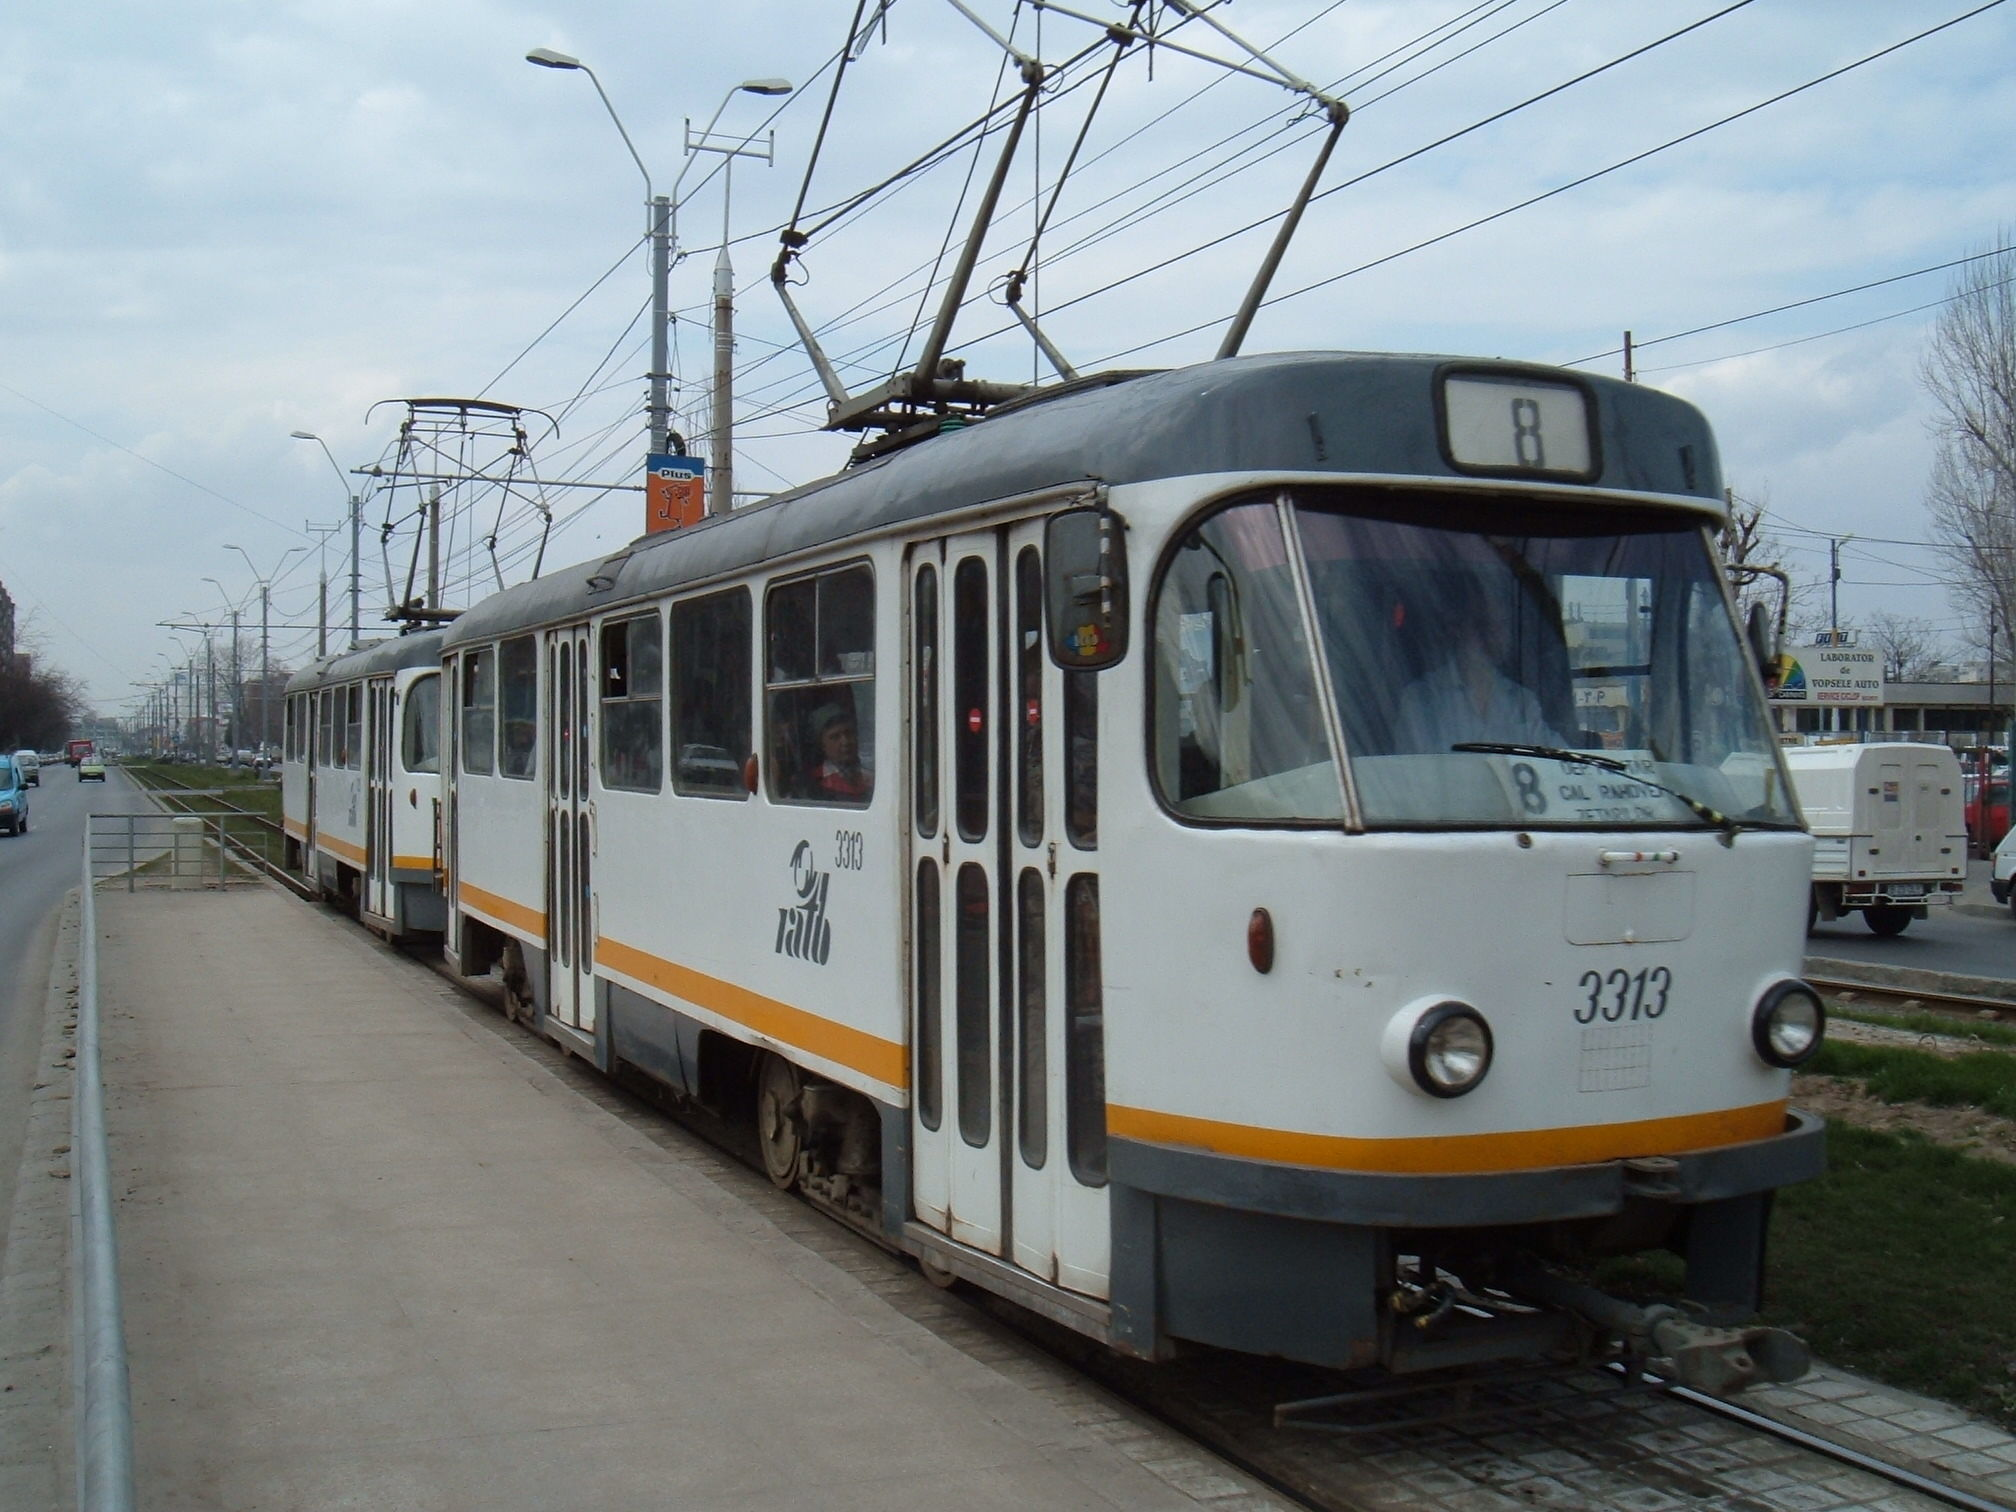 File:Bucharest Tatra tram 1.jpg - Wikimedia Commons